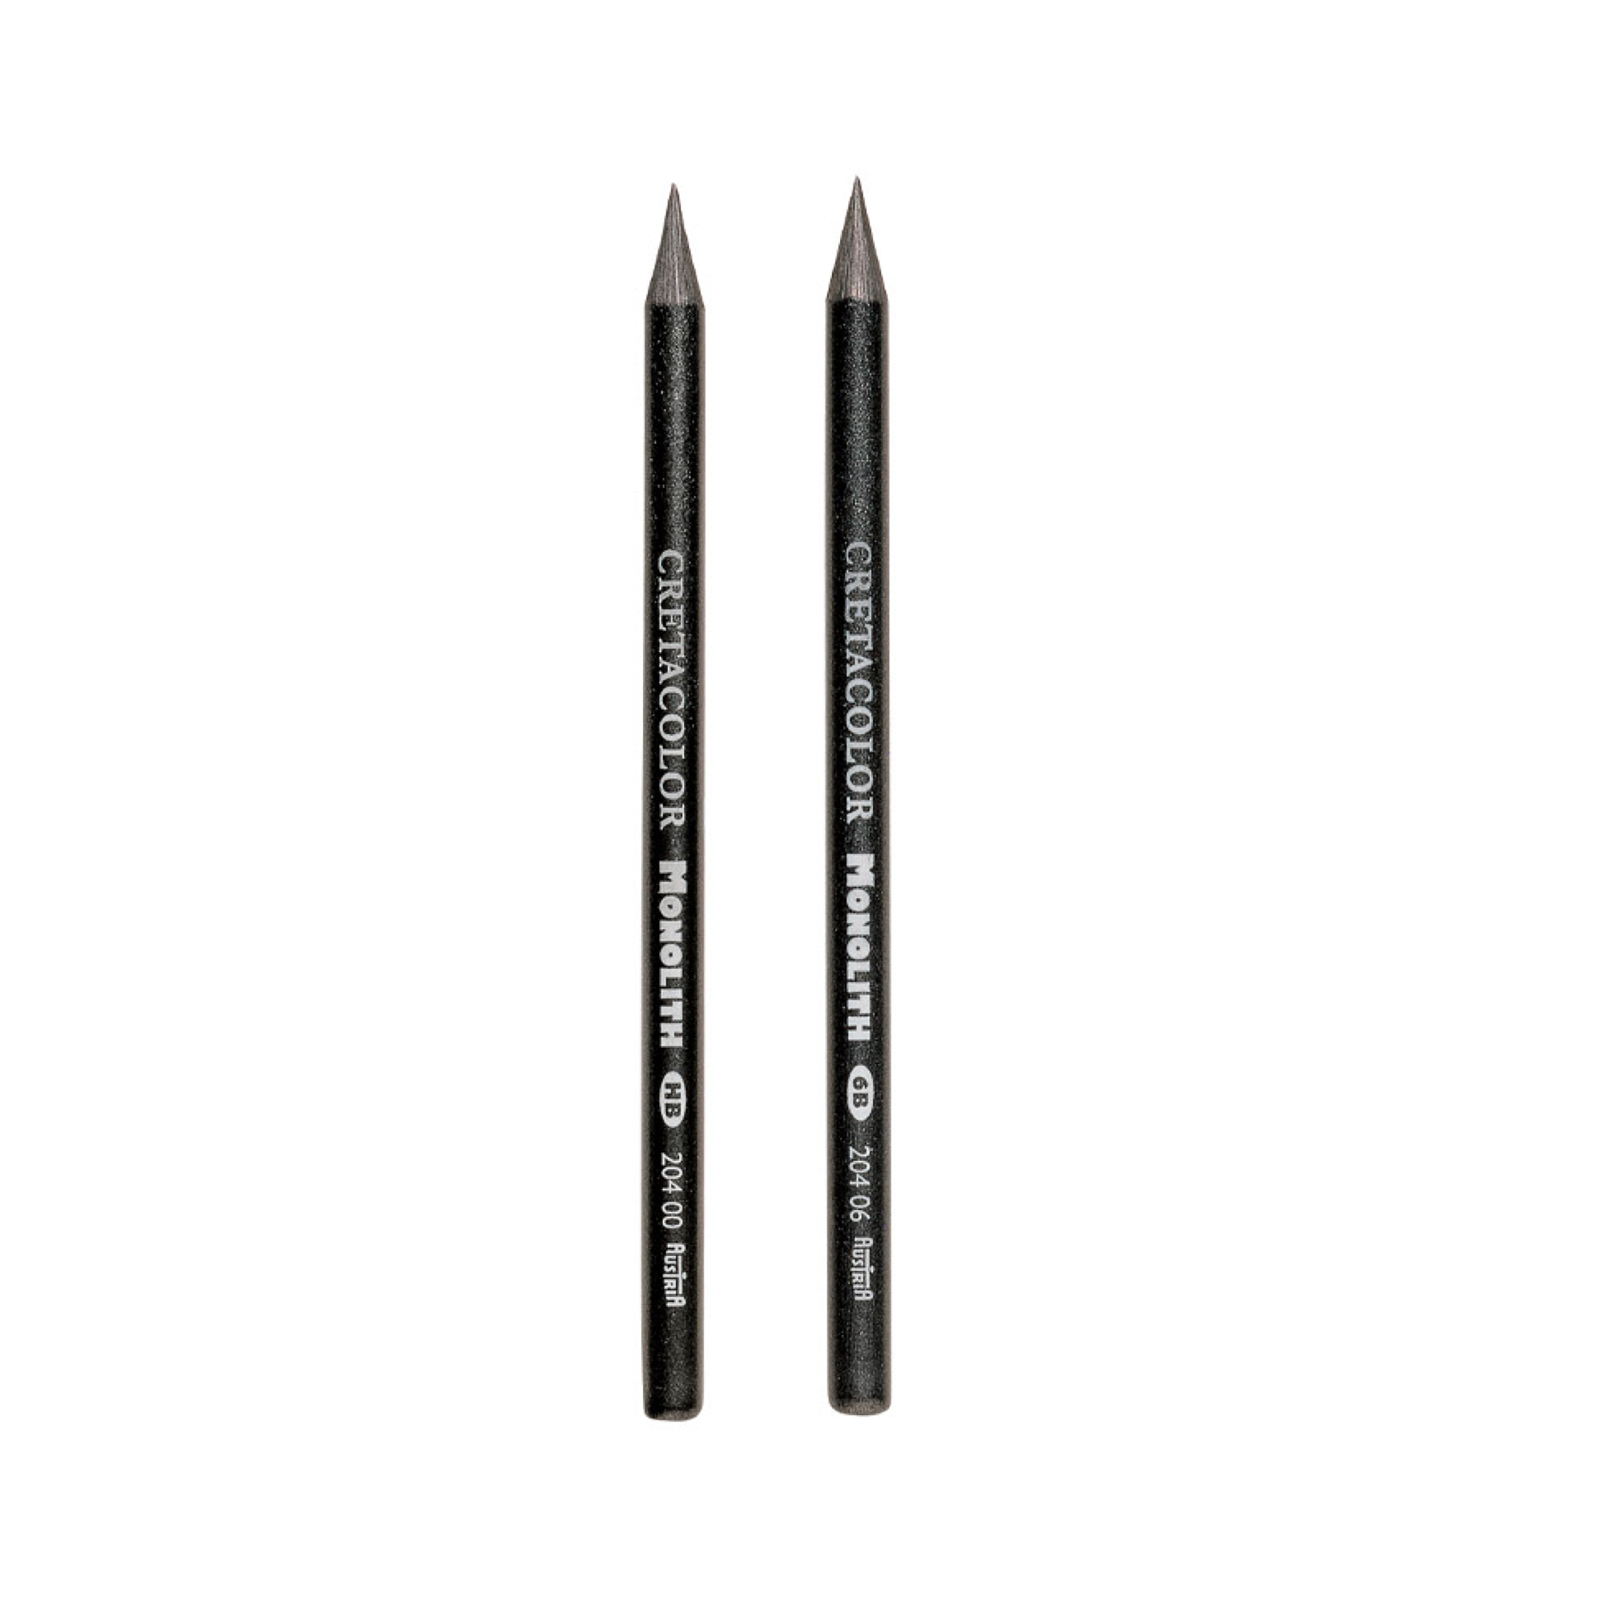 Monolith Woodless Graphite Pencils